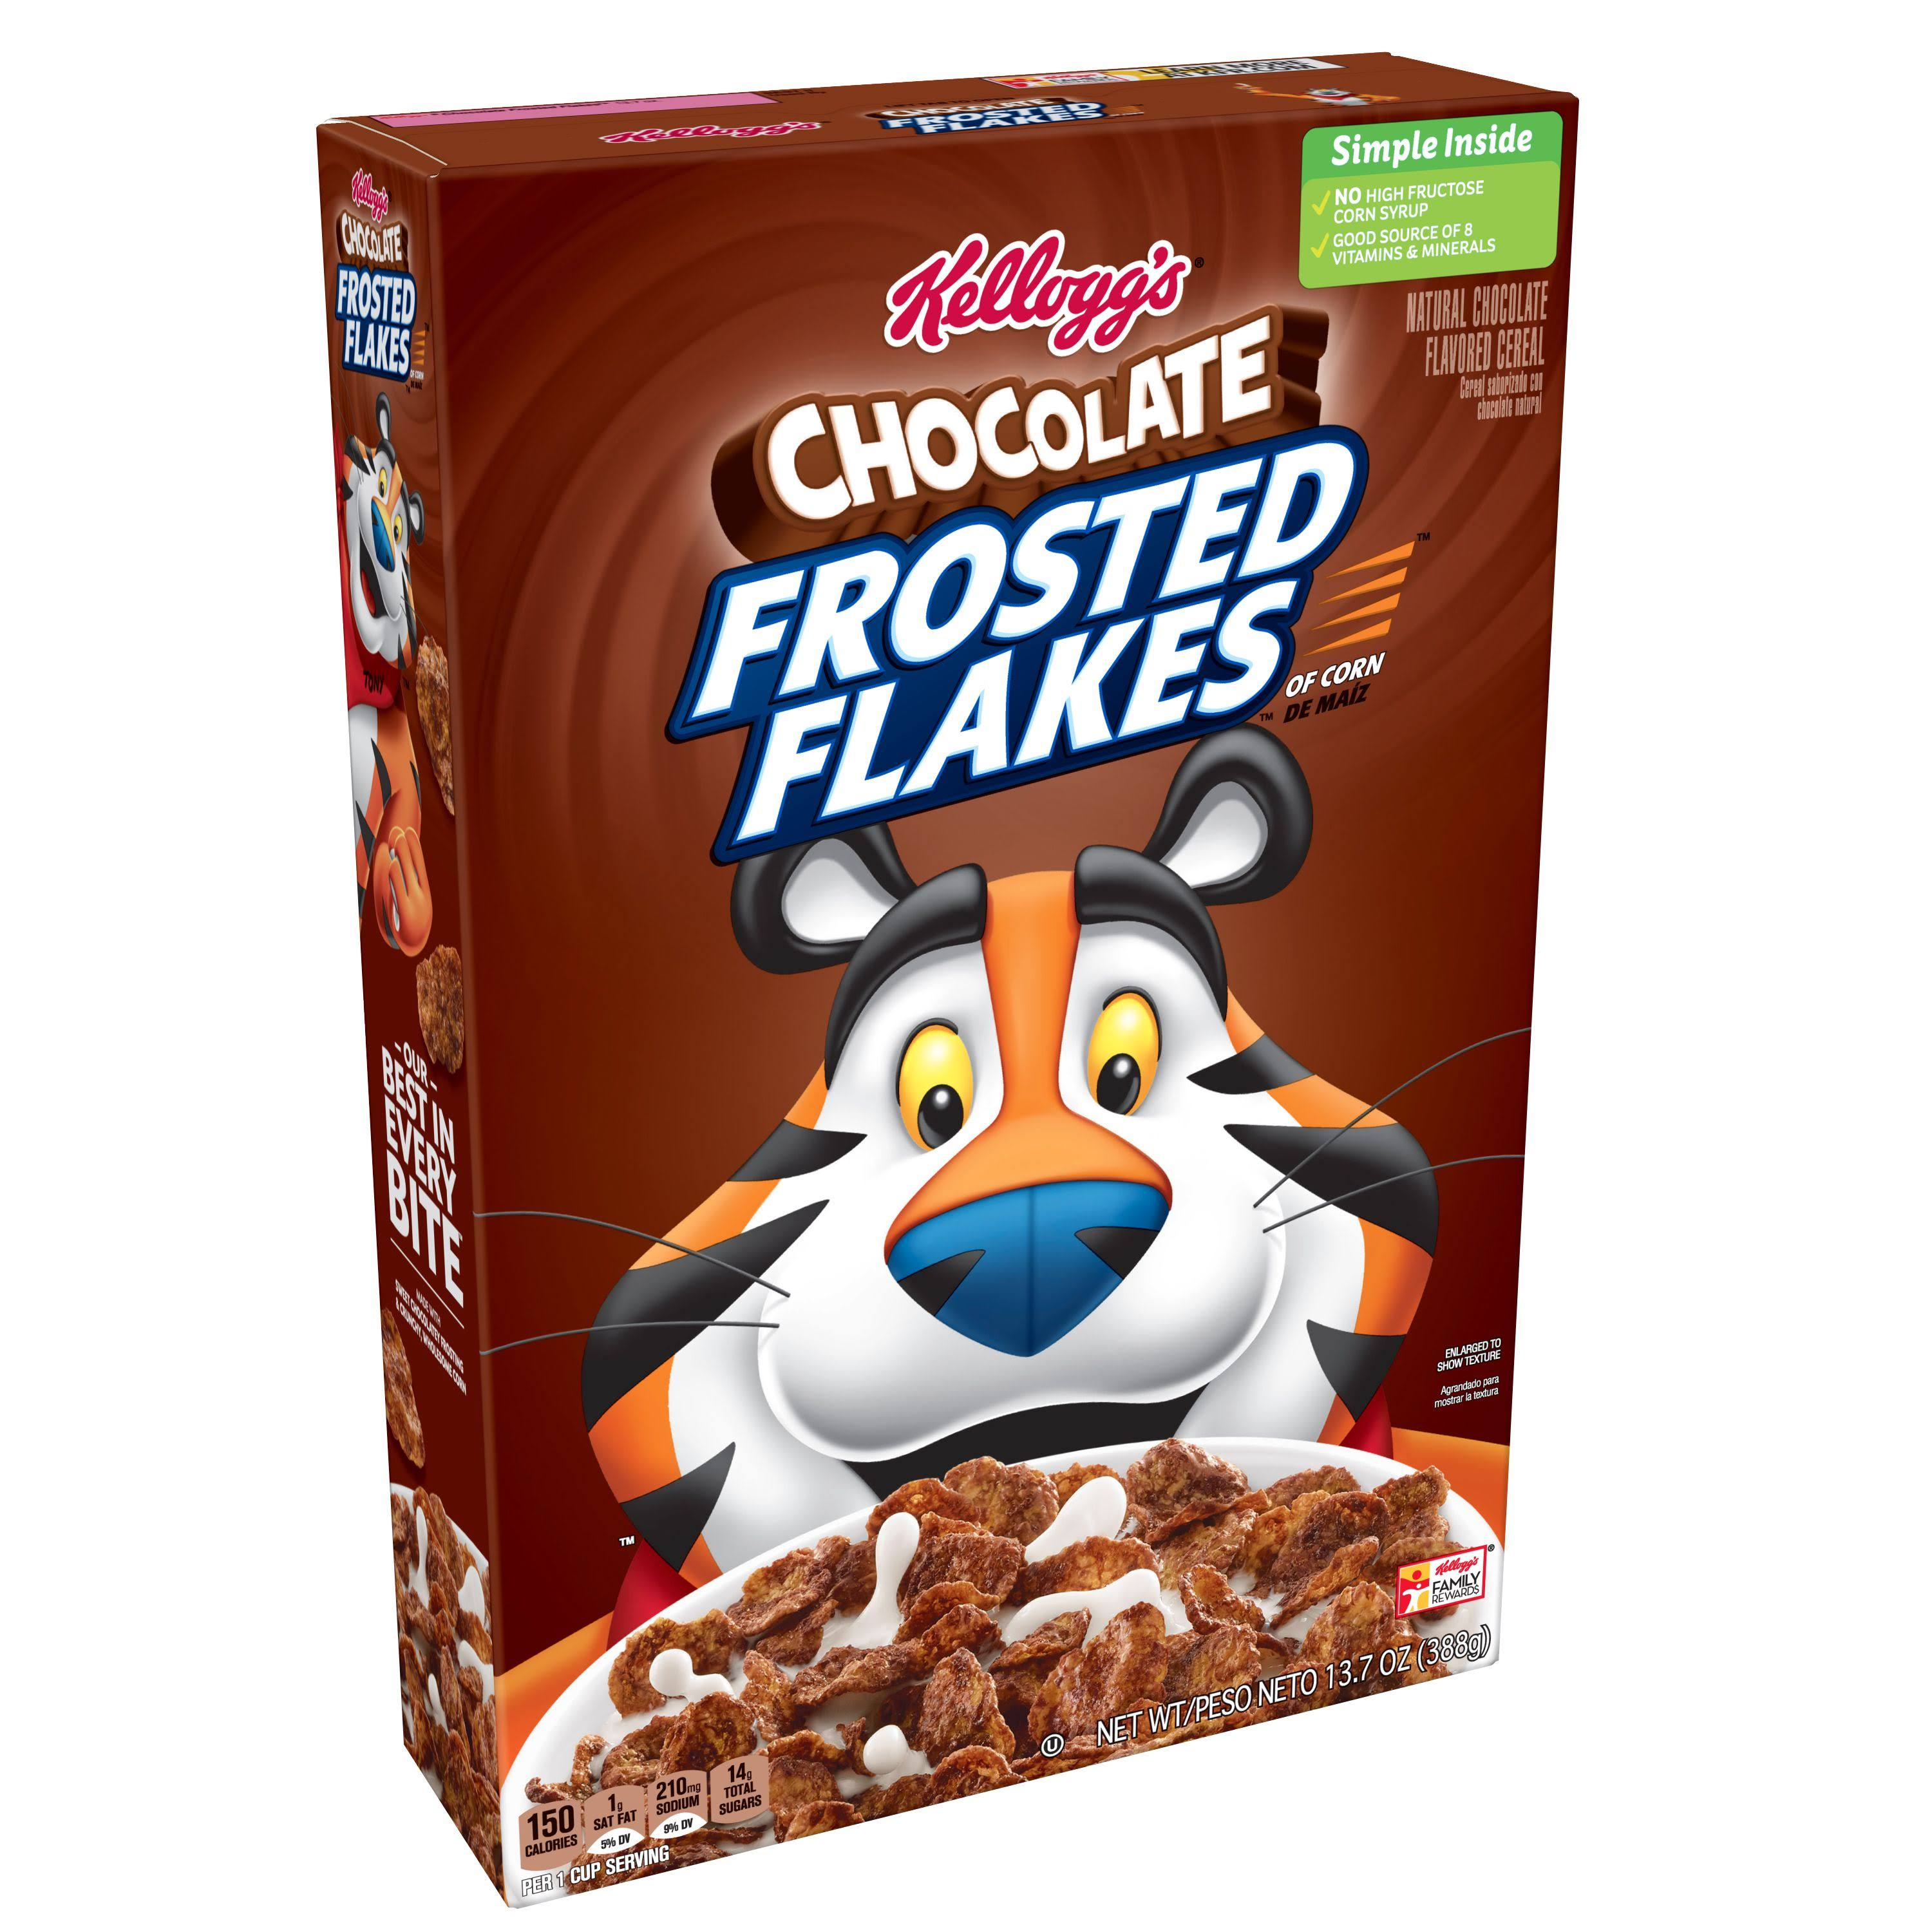 Kellogg's Breakfast Cereal - Chocolate Frosted Flakes, Low Fat, 13.7oz